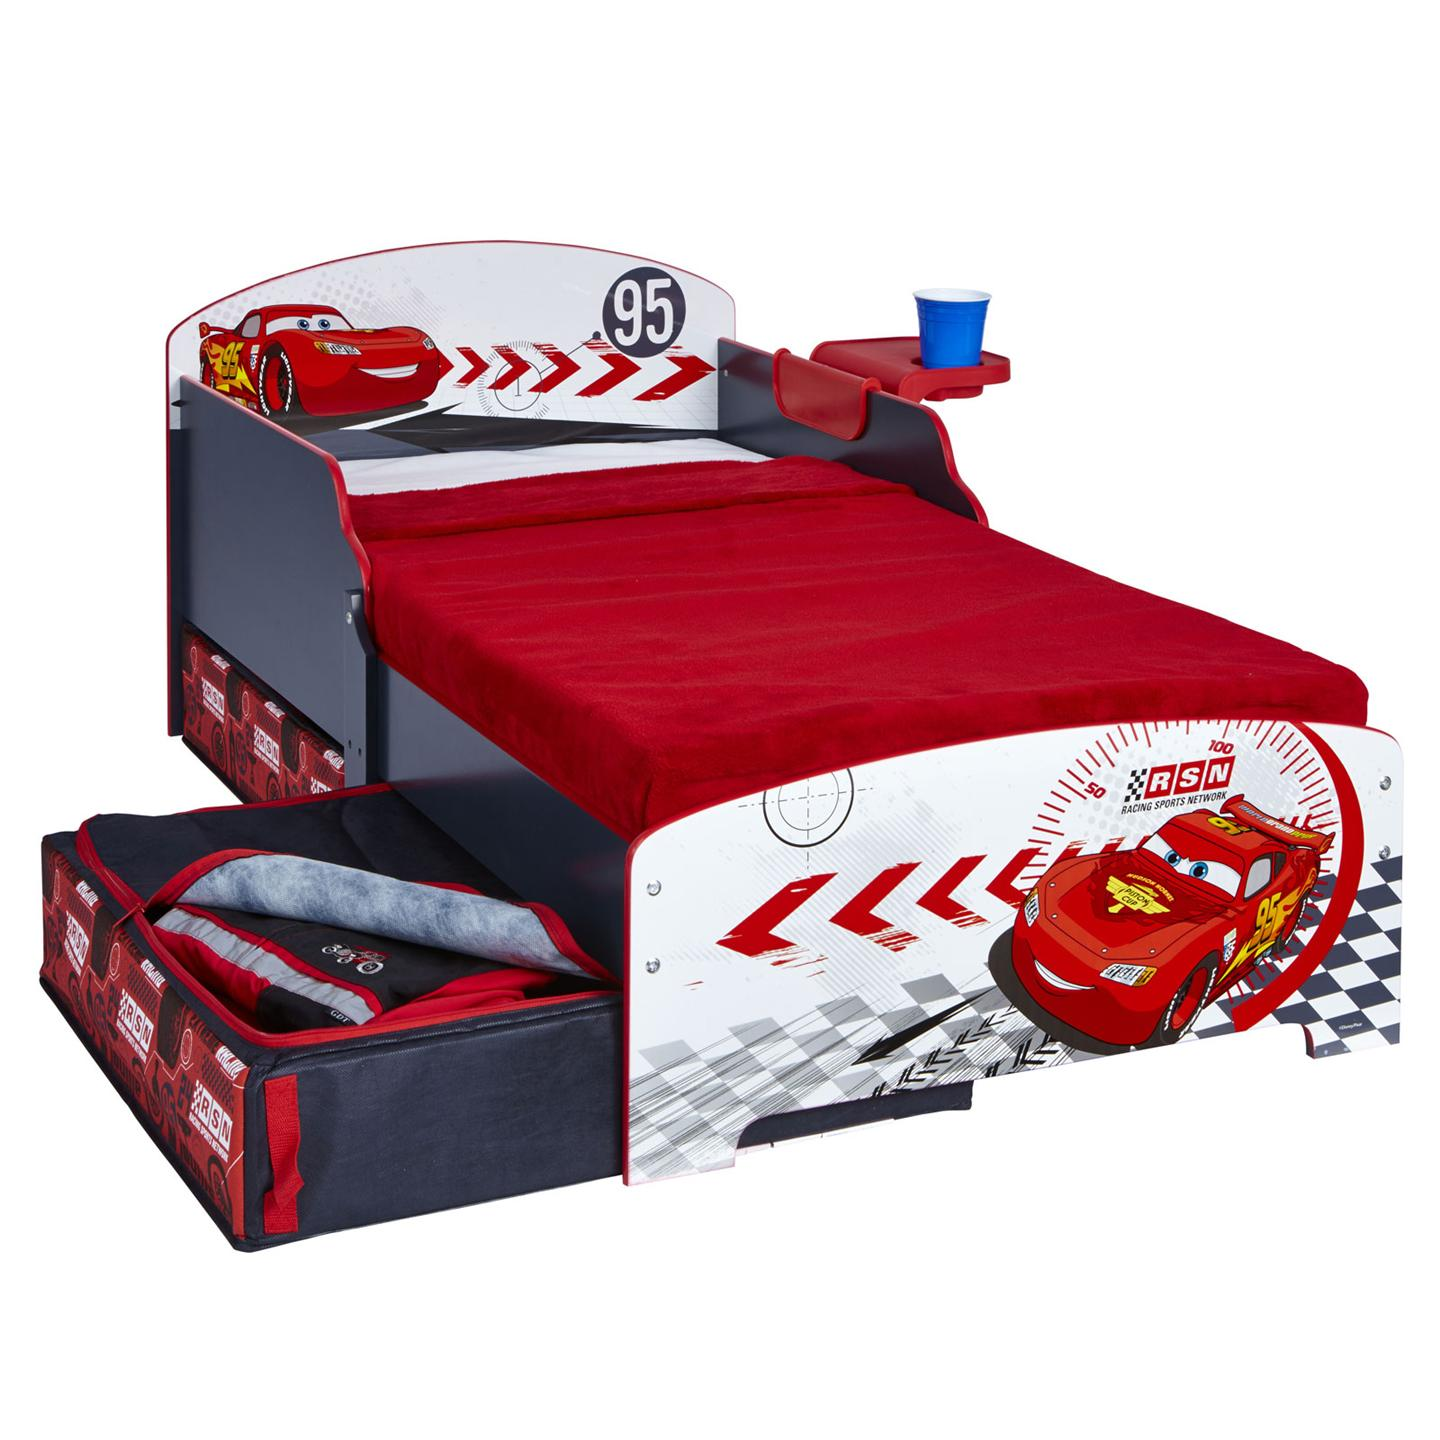 Disney cars toddler bed kids 10 ways to ensure your child s